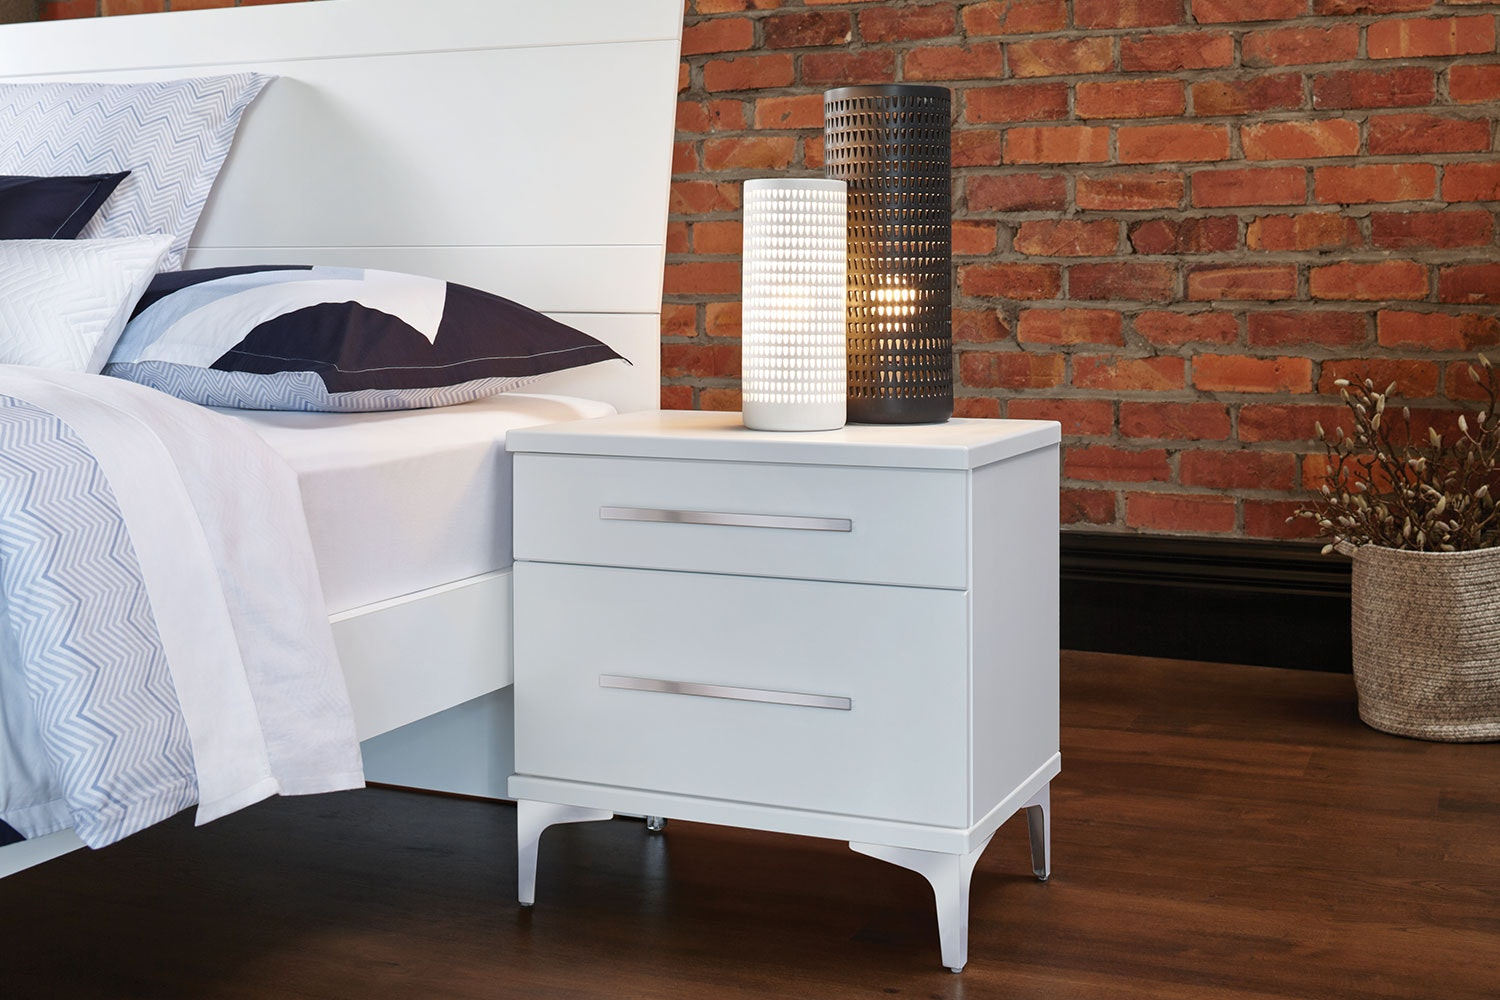 Salento 2 Drawer Bedside Table by Platform 10